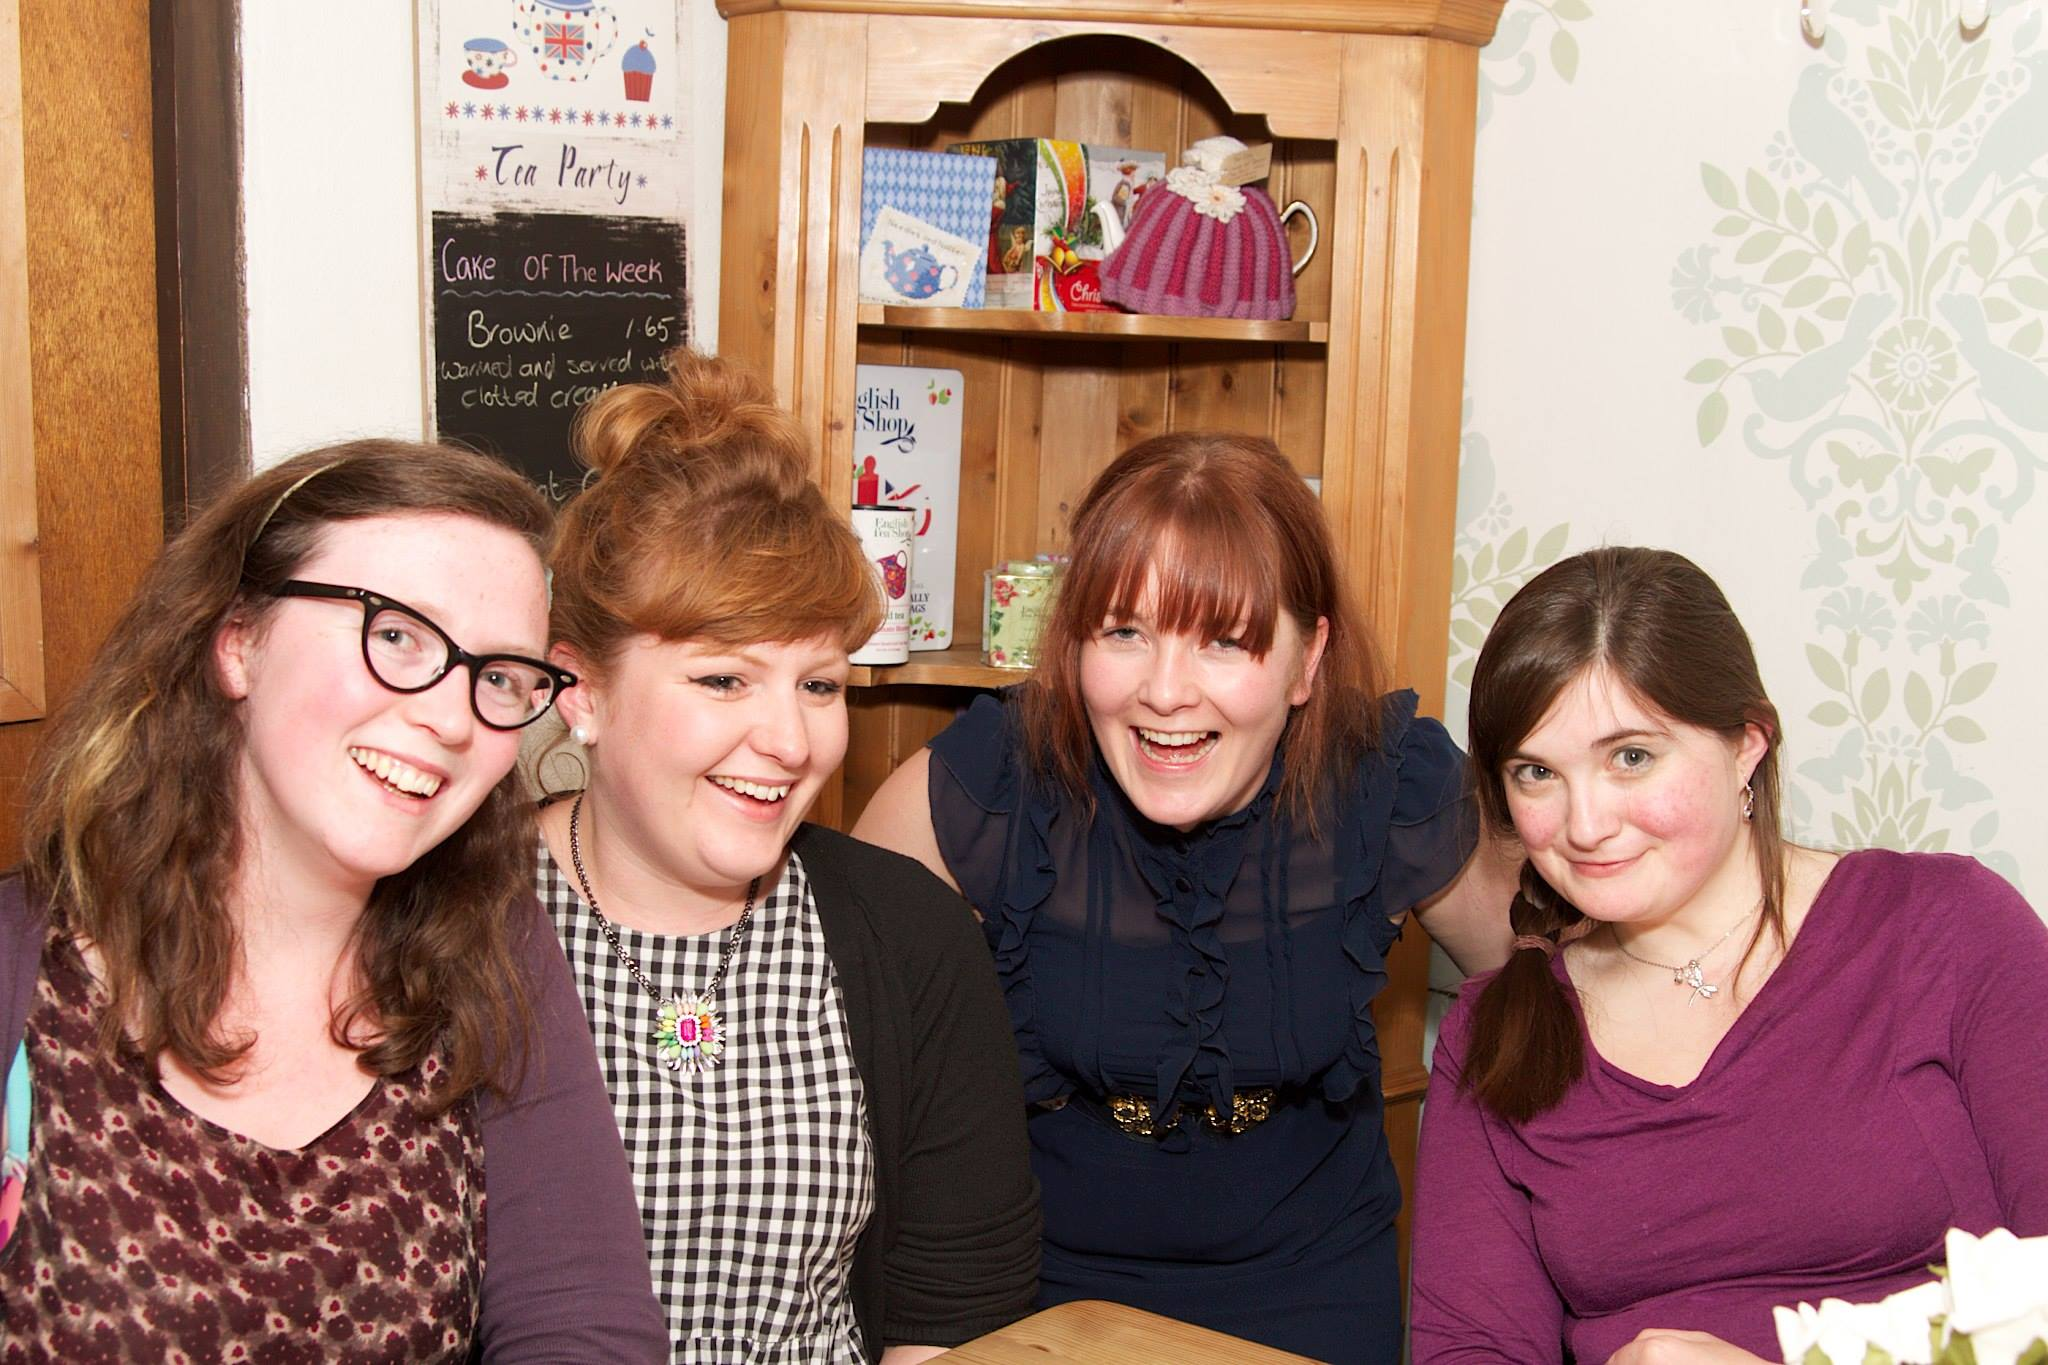 Me and my friends at Rosie's Tea Room for my birthday